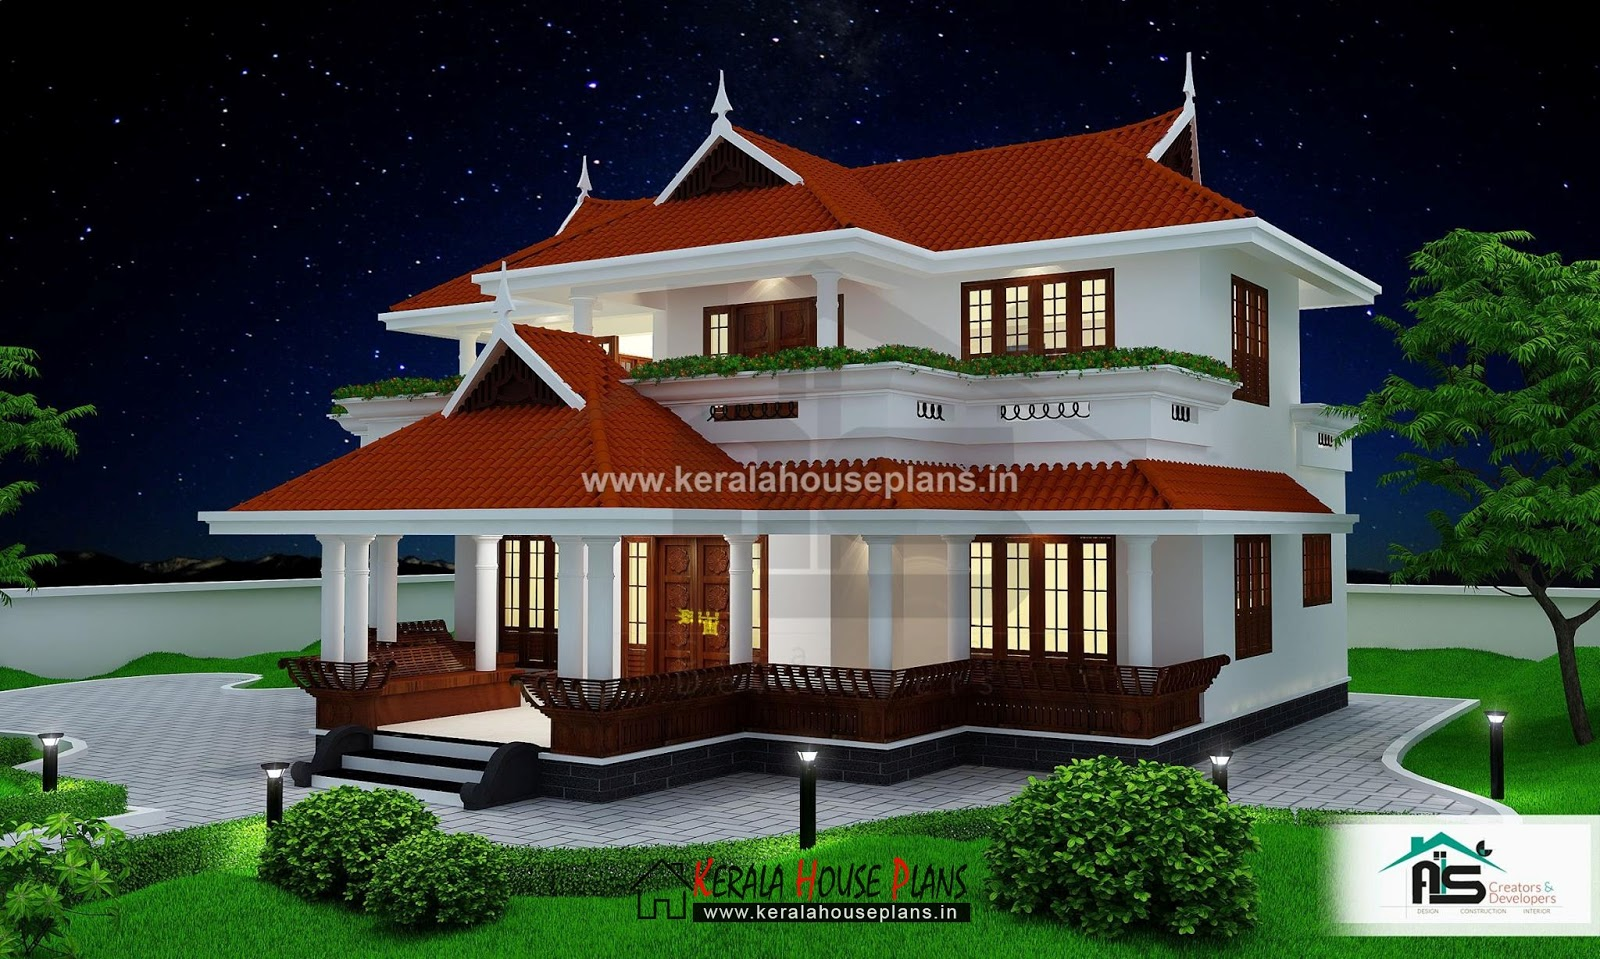 Veedu plan kerala traditional style home kerala house for Traditional style house plans